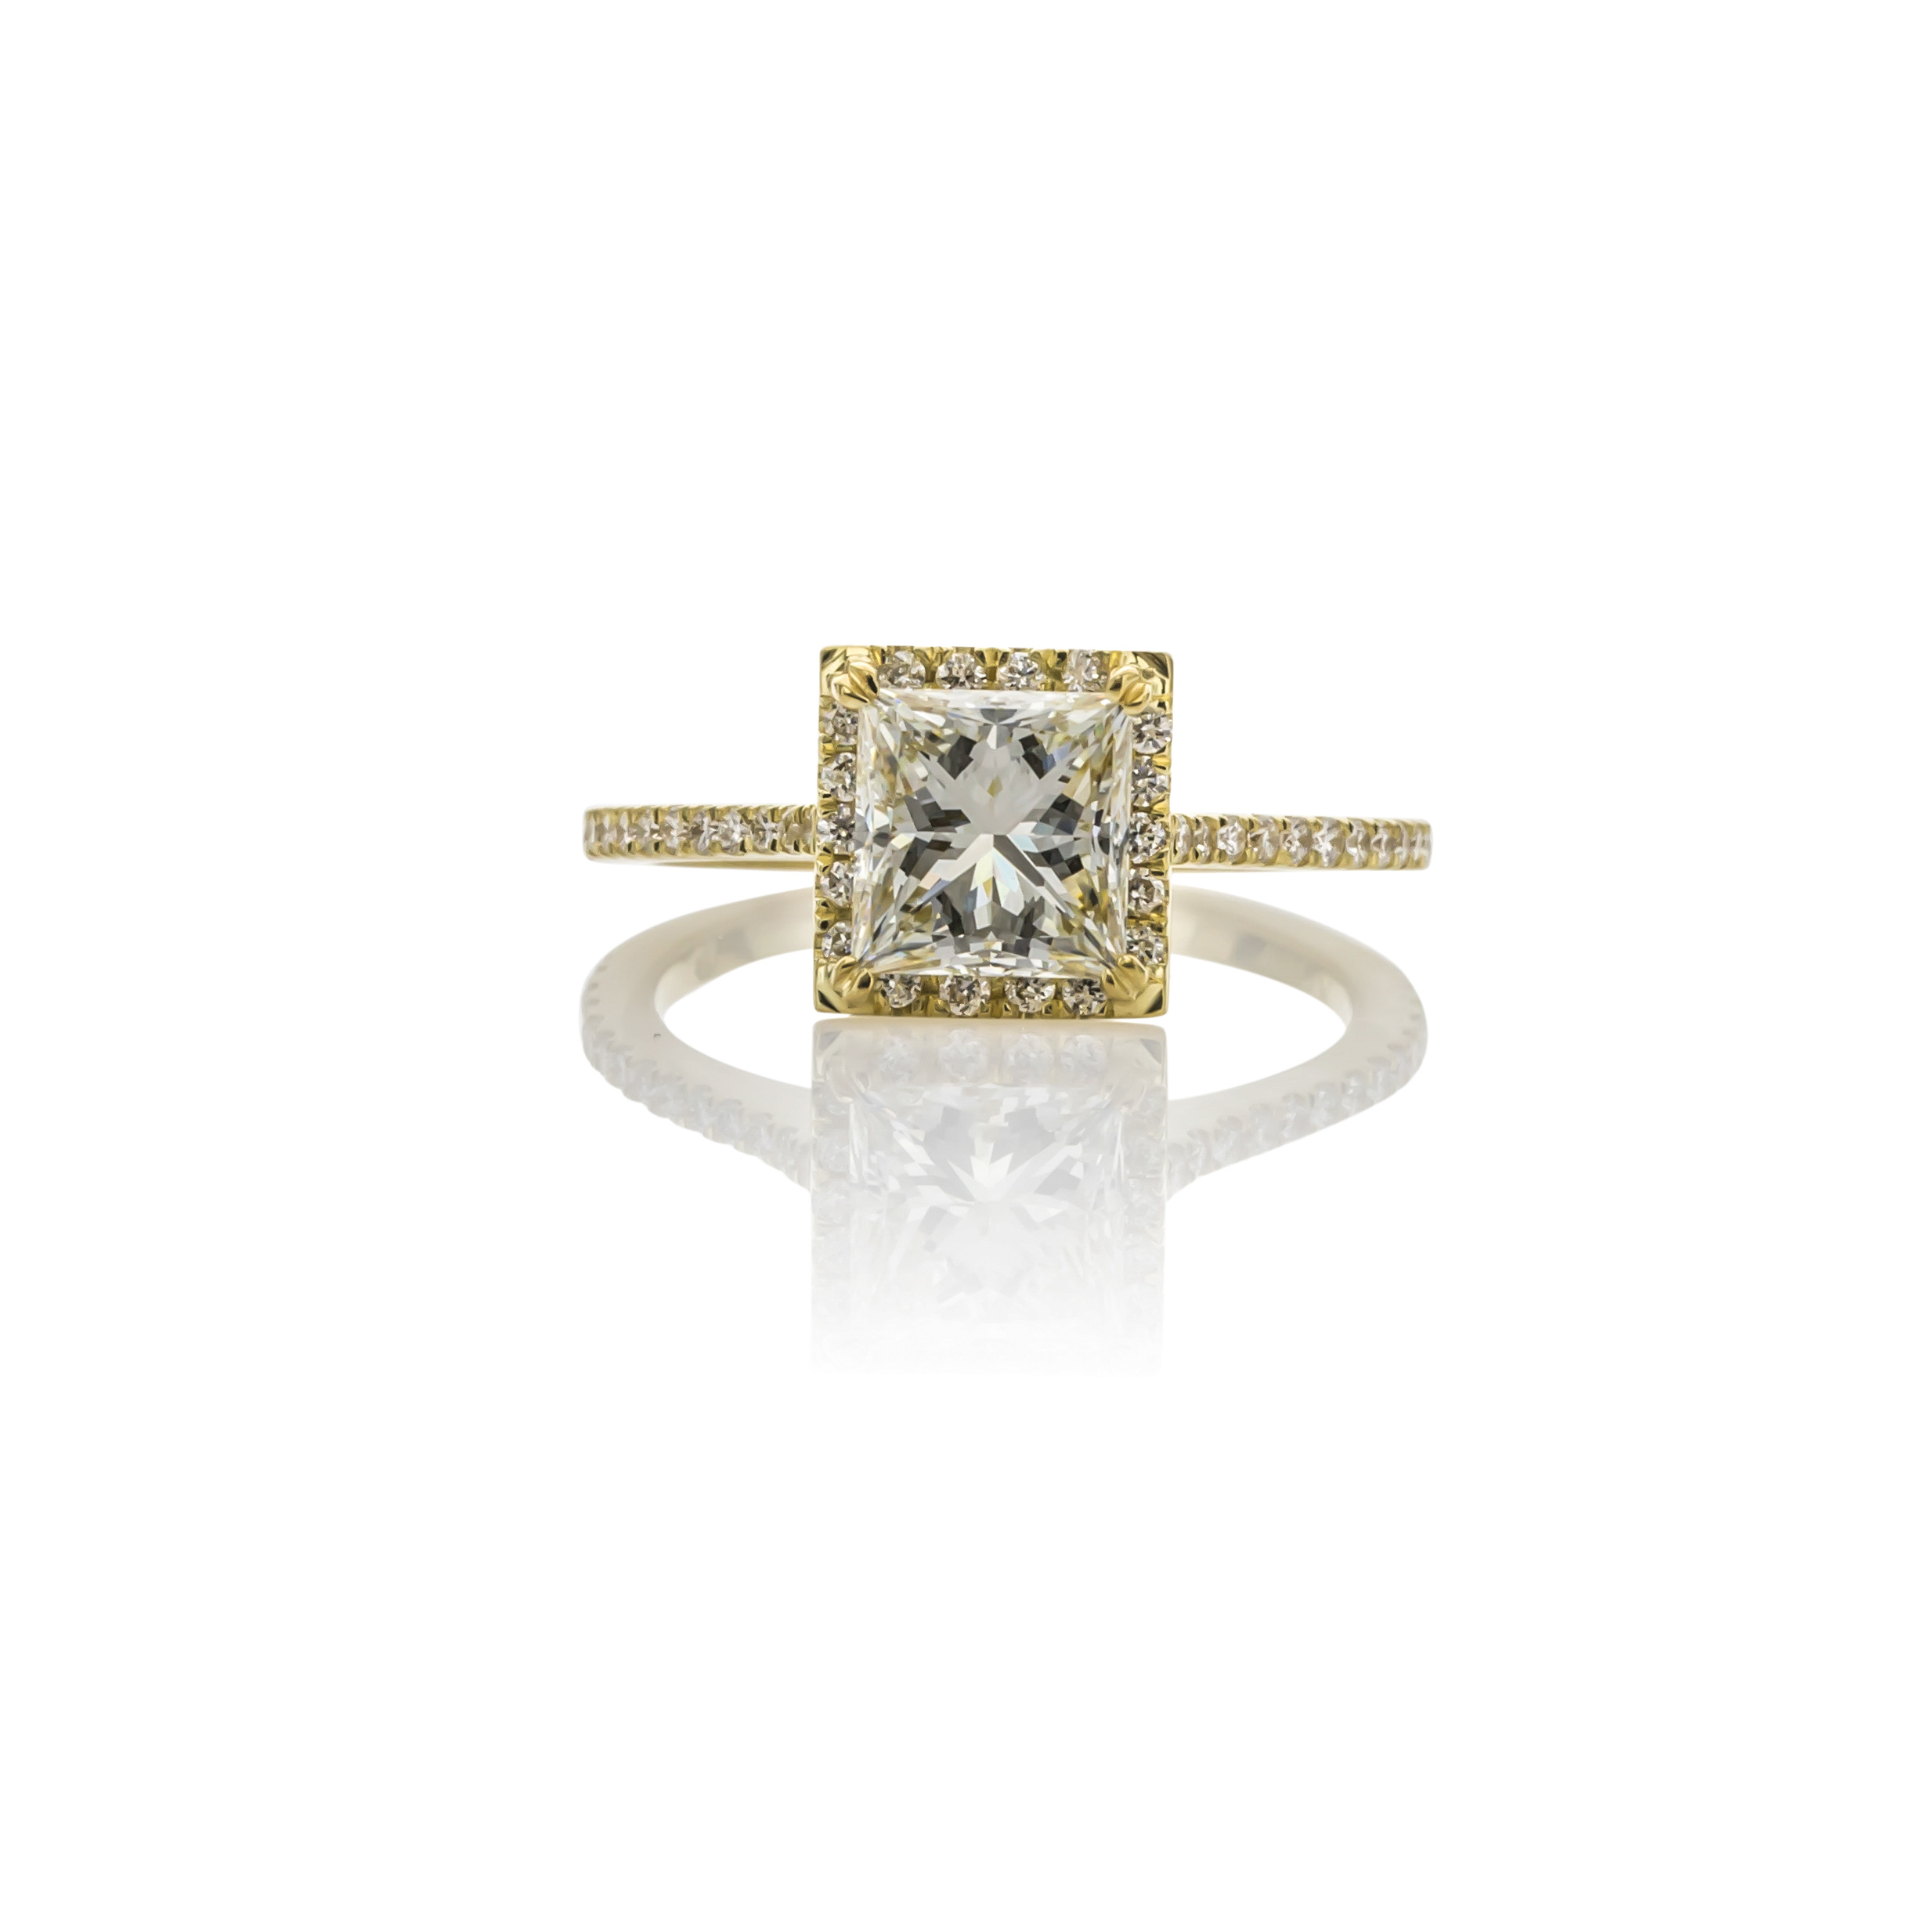 CUSTOM 18K YELLOW GOLD PRINCESS CUT DIAMOND ENGAGEMENT RING